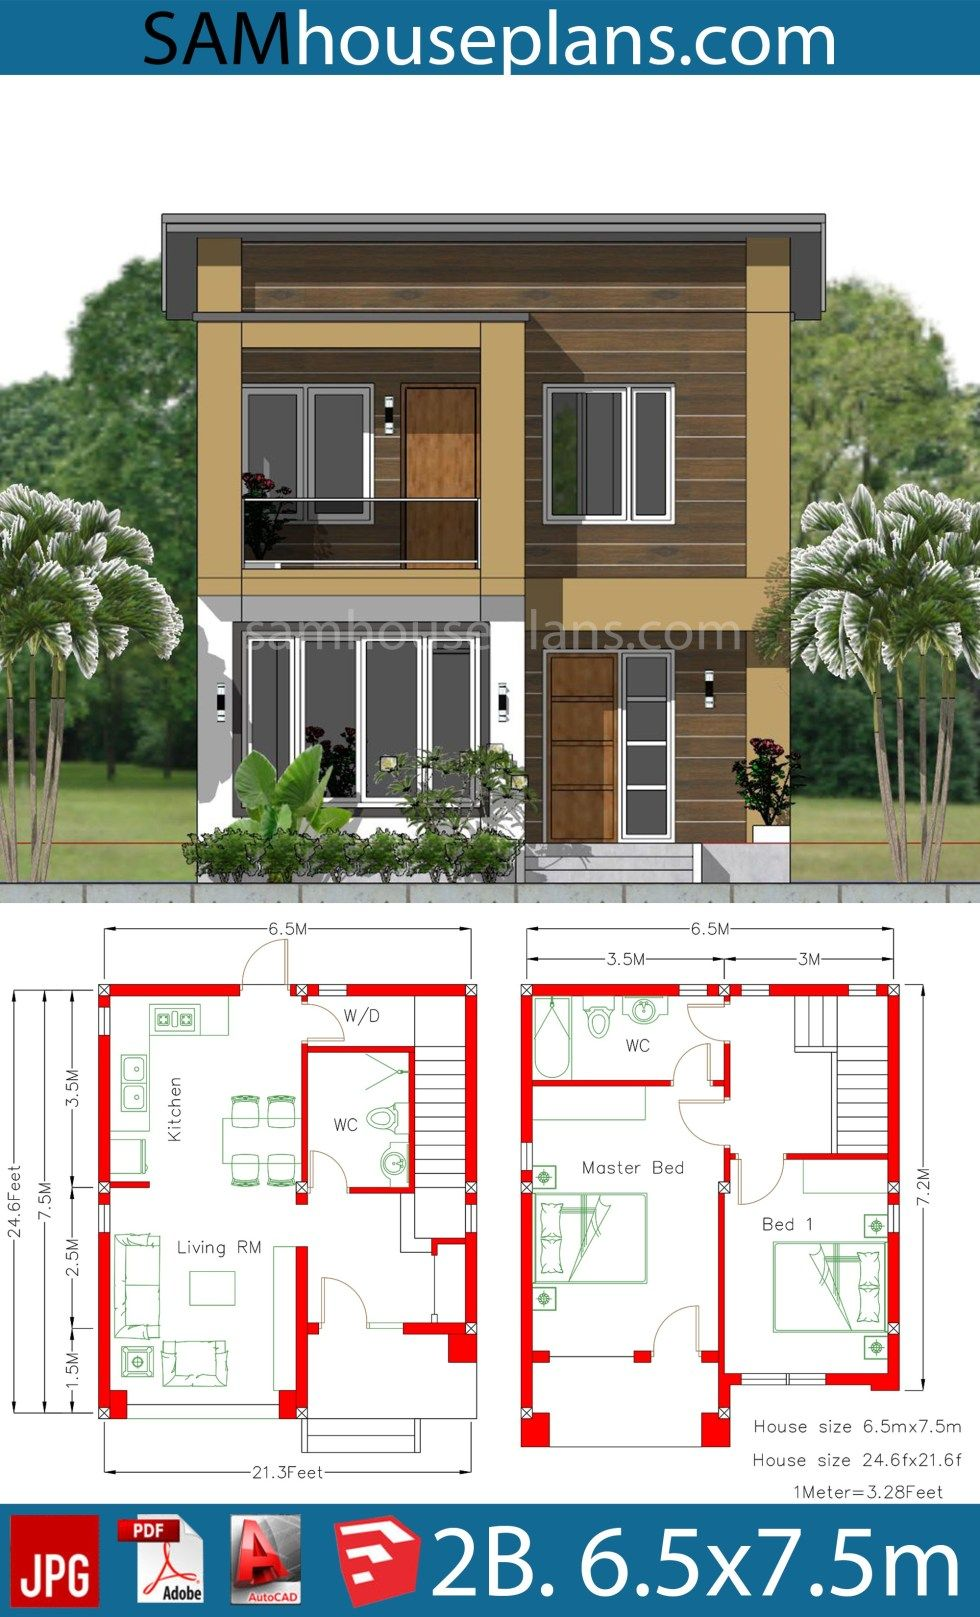 House Plan 6 5x7 5m With 2 Bedrooms A2 Model House Plan Duplex